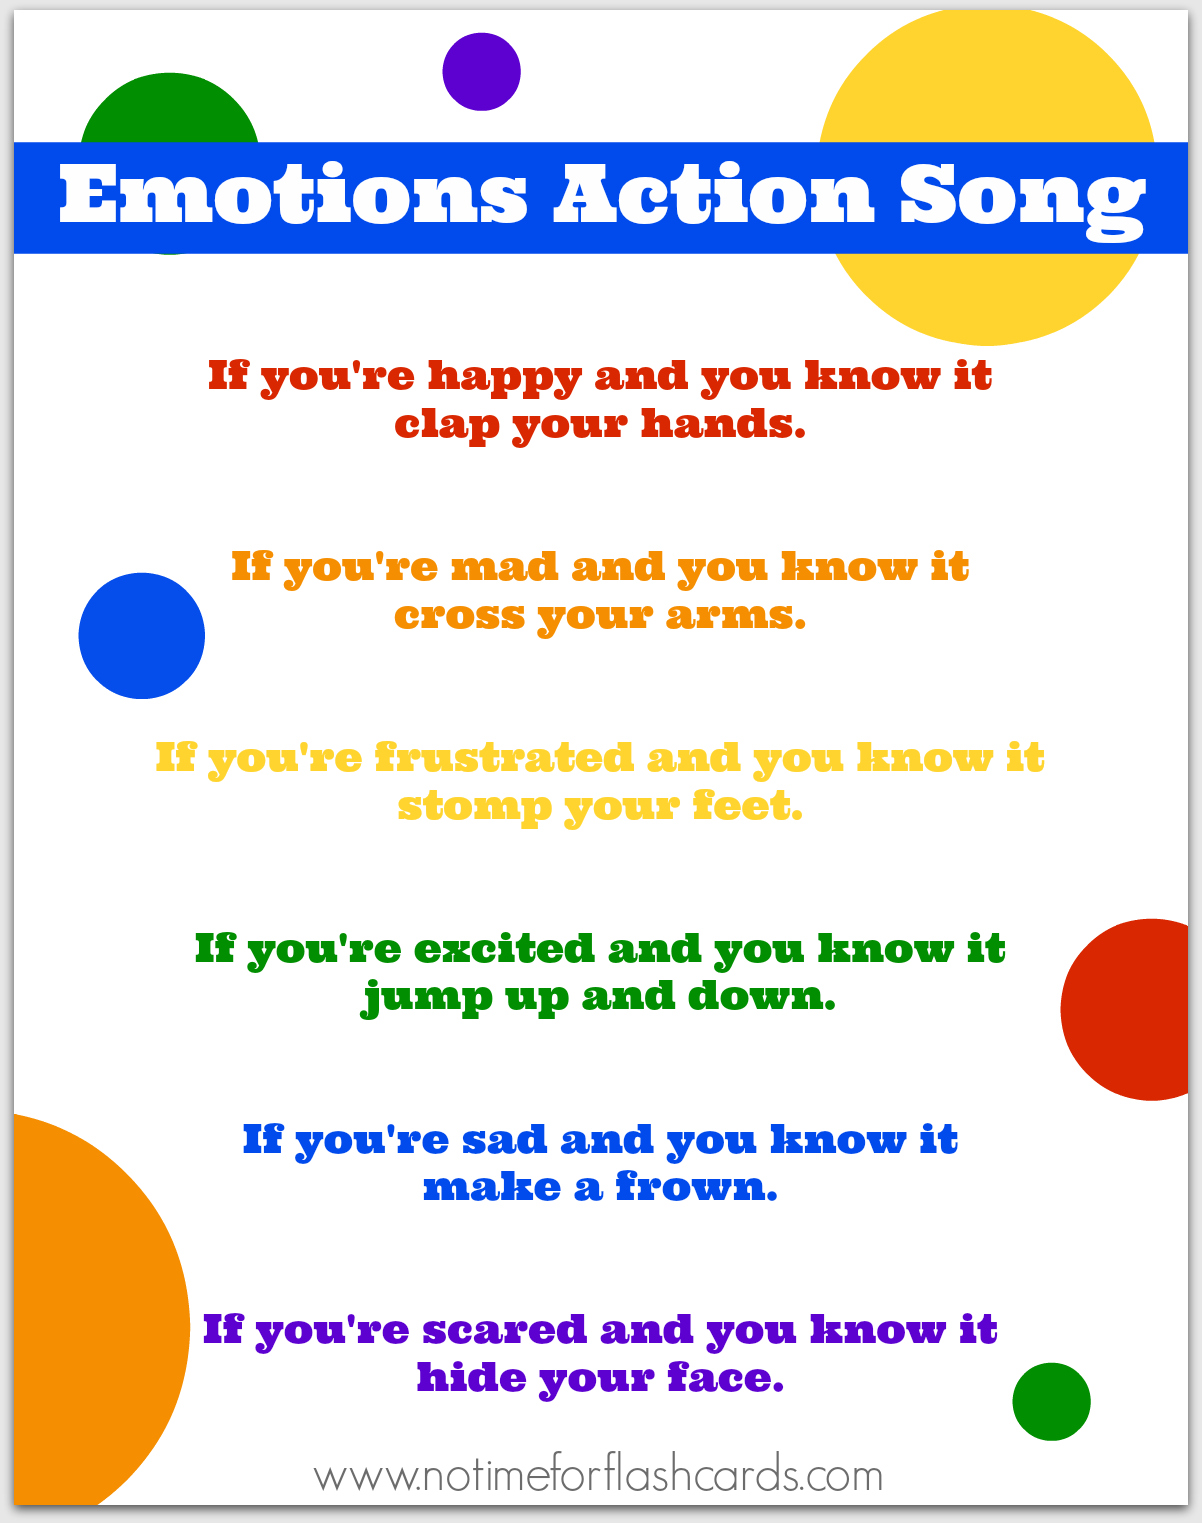 worksheet Time Flash Cards emotions action song printable no time for flash cards cards